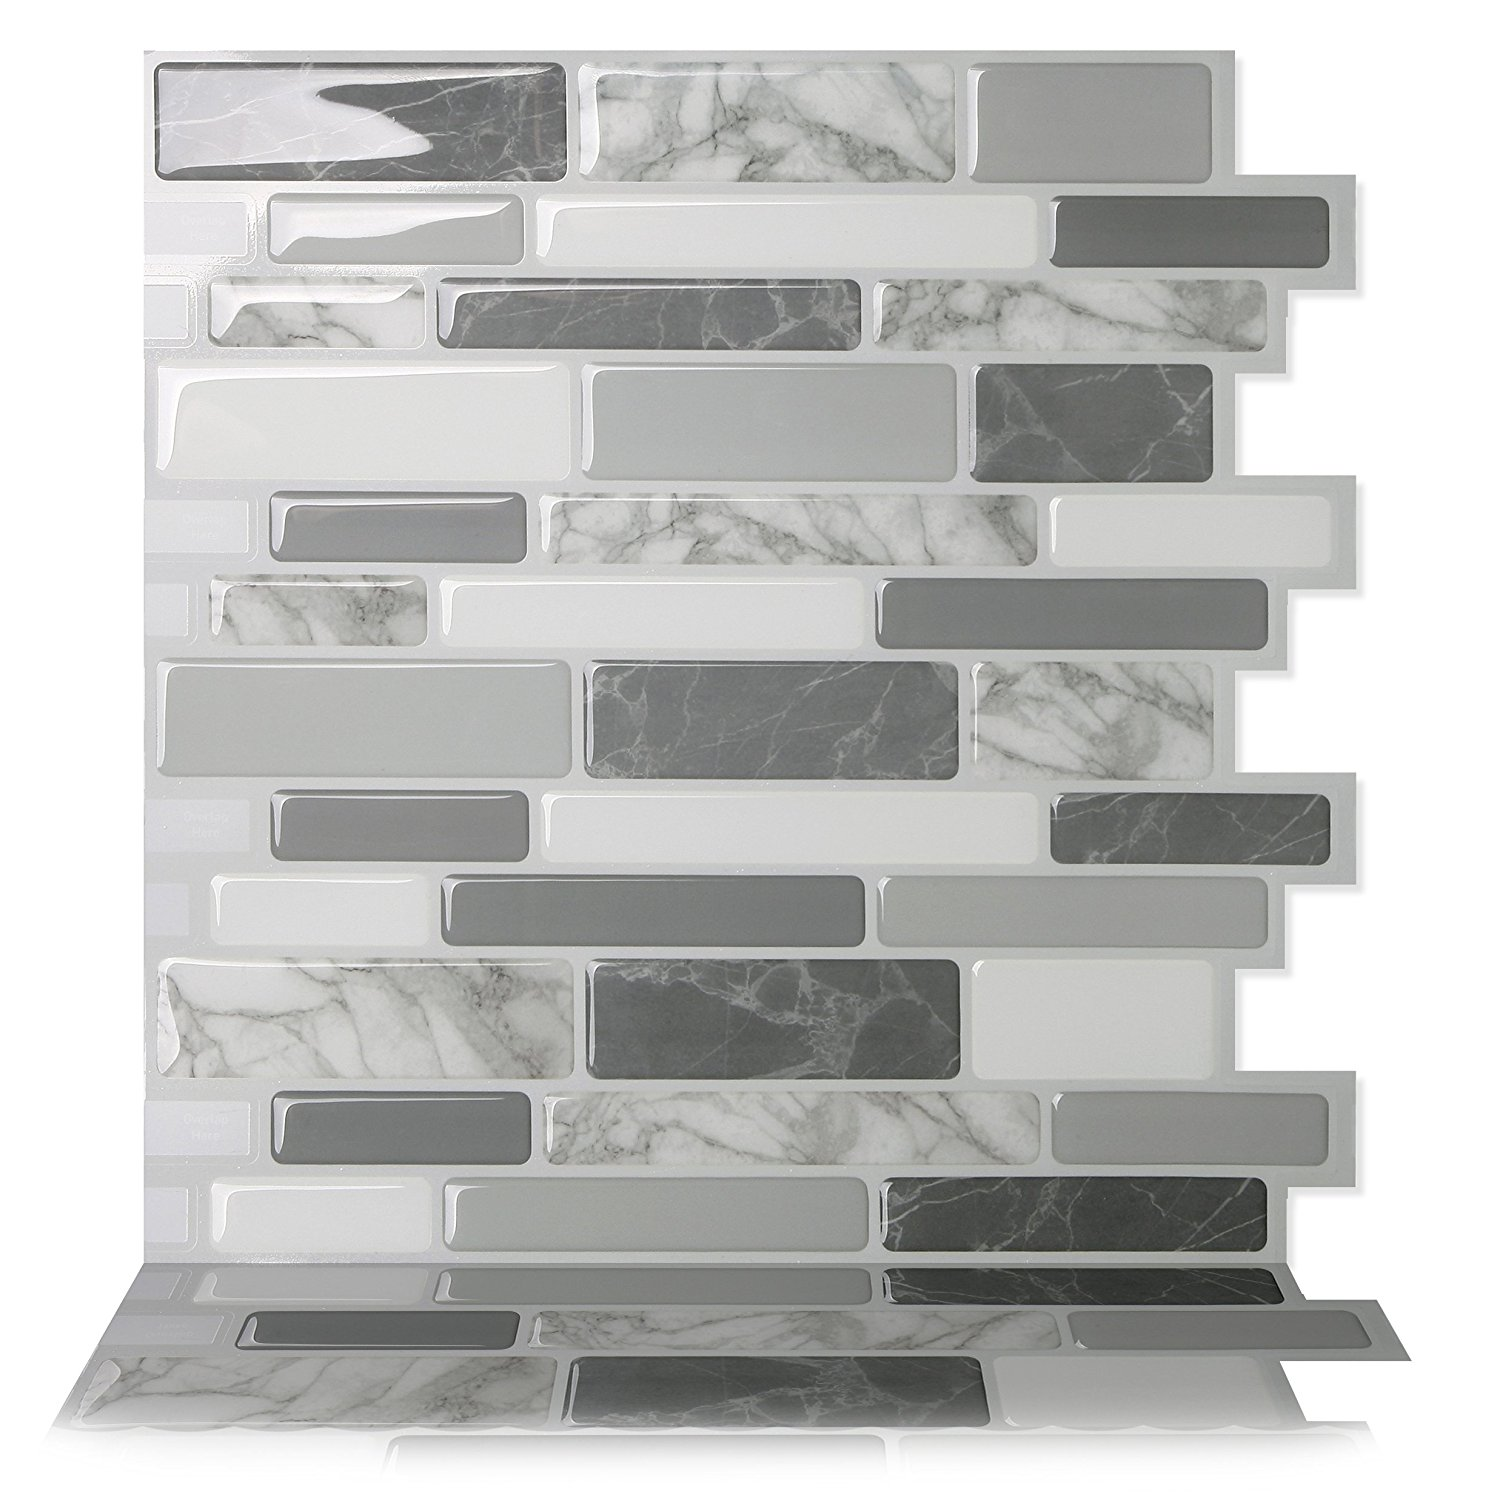 Tic Tac Tiles - Premium Anti Mold Peel and Stick Wall Tile Backsplash in Polito Gray